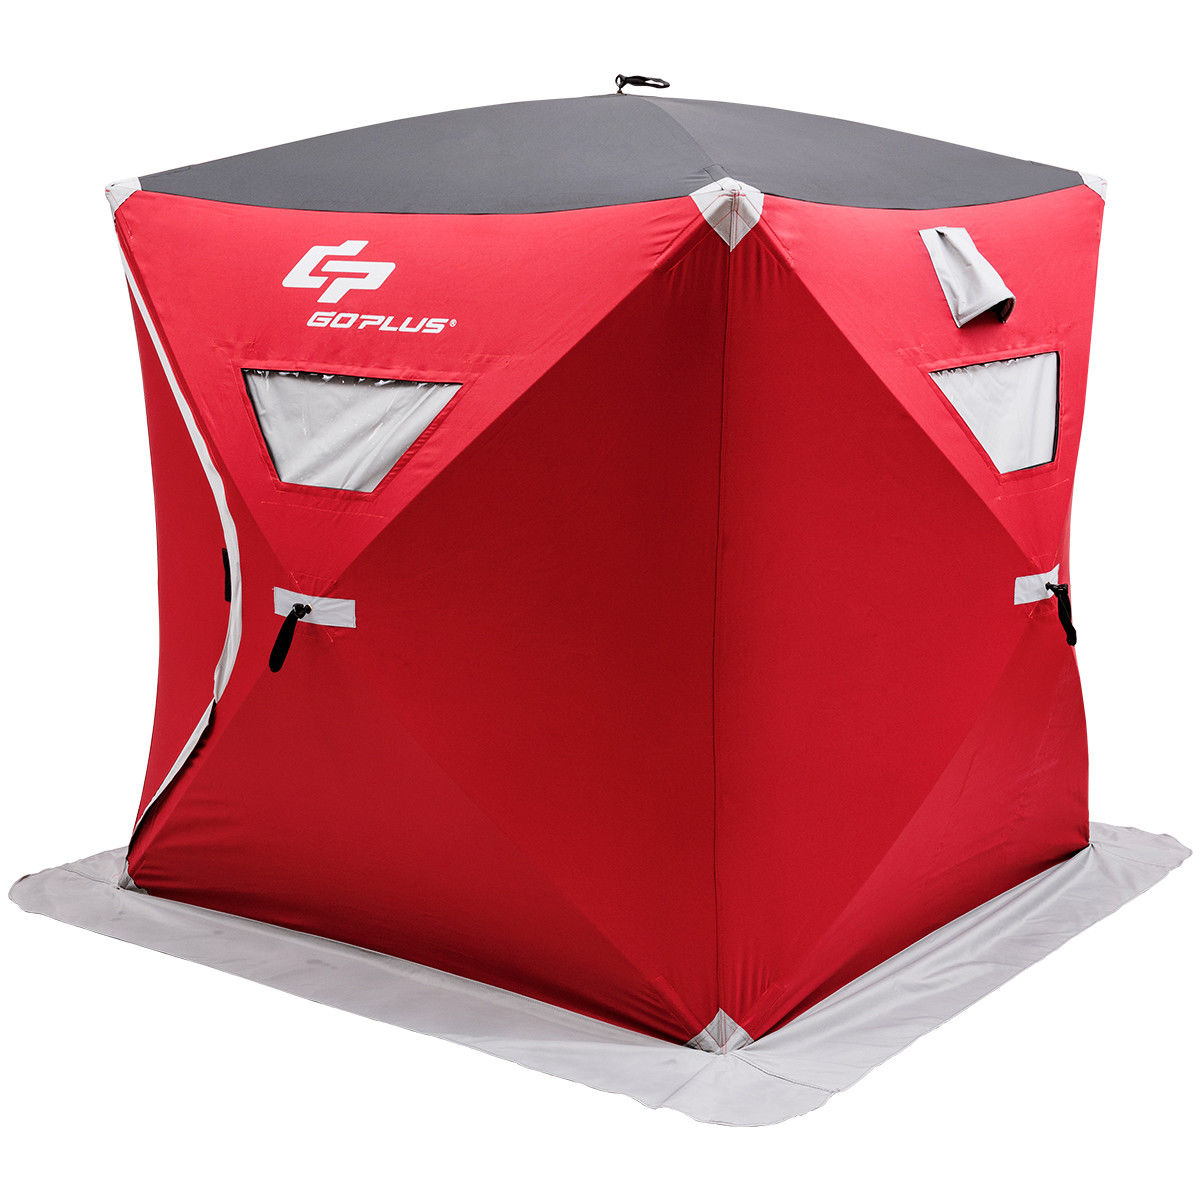 Goplus Portable Pop-up 2-person Ice Shelter Fishing Tent Shanty w  Bag Ice Anchors Red by Costway